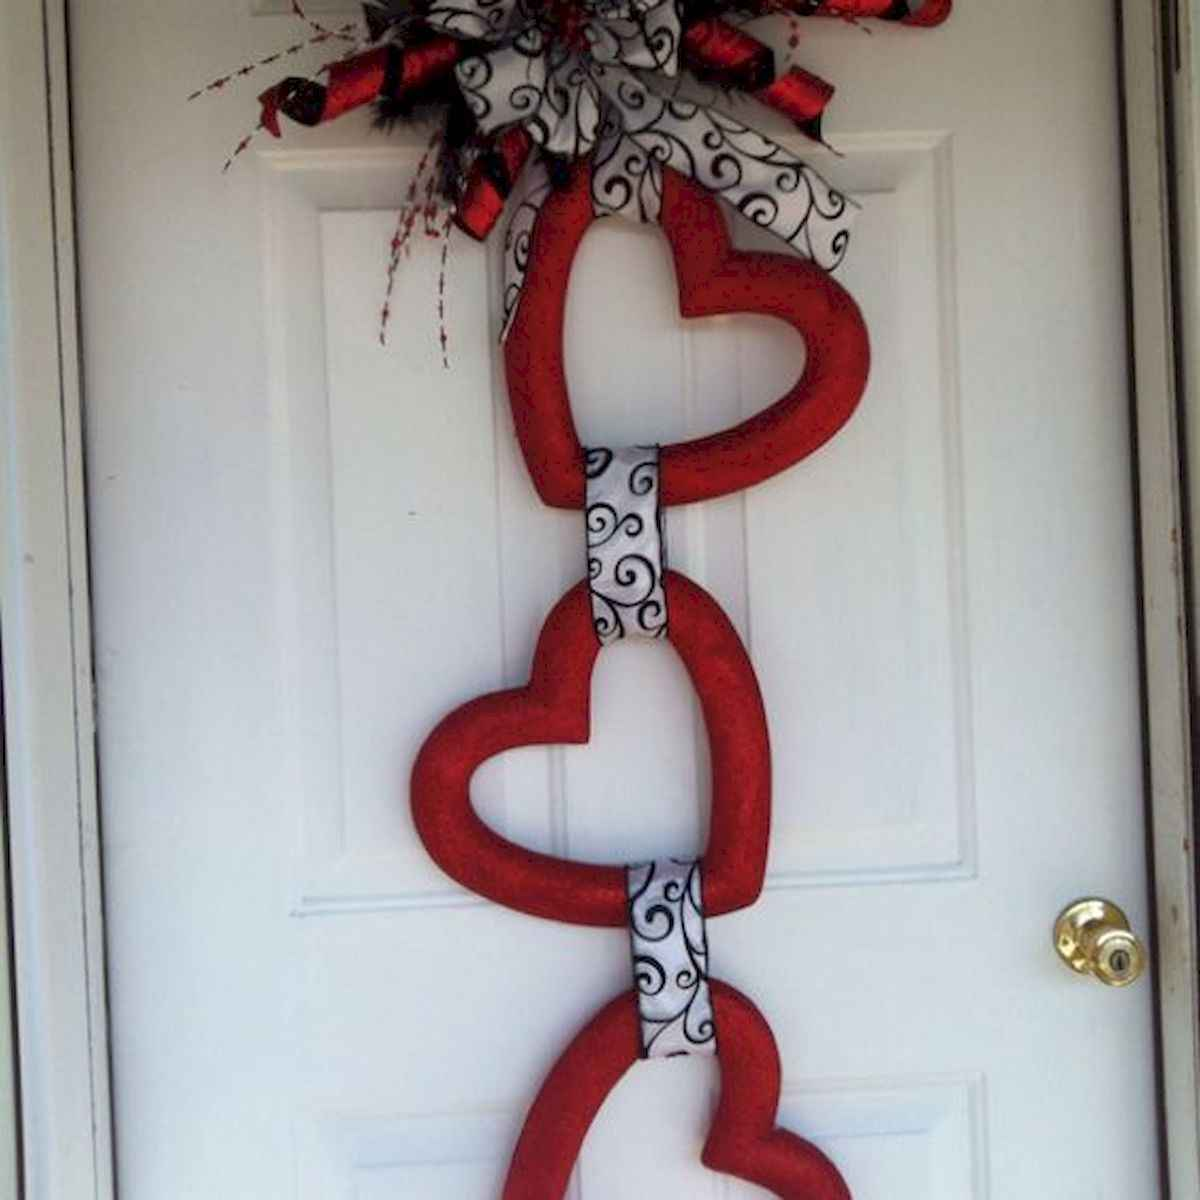 110 easy diy valentines decorations ideas and remodel (59)